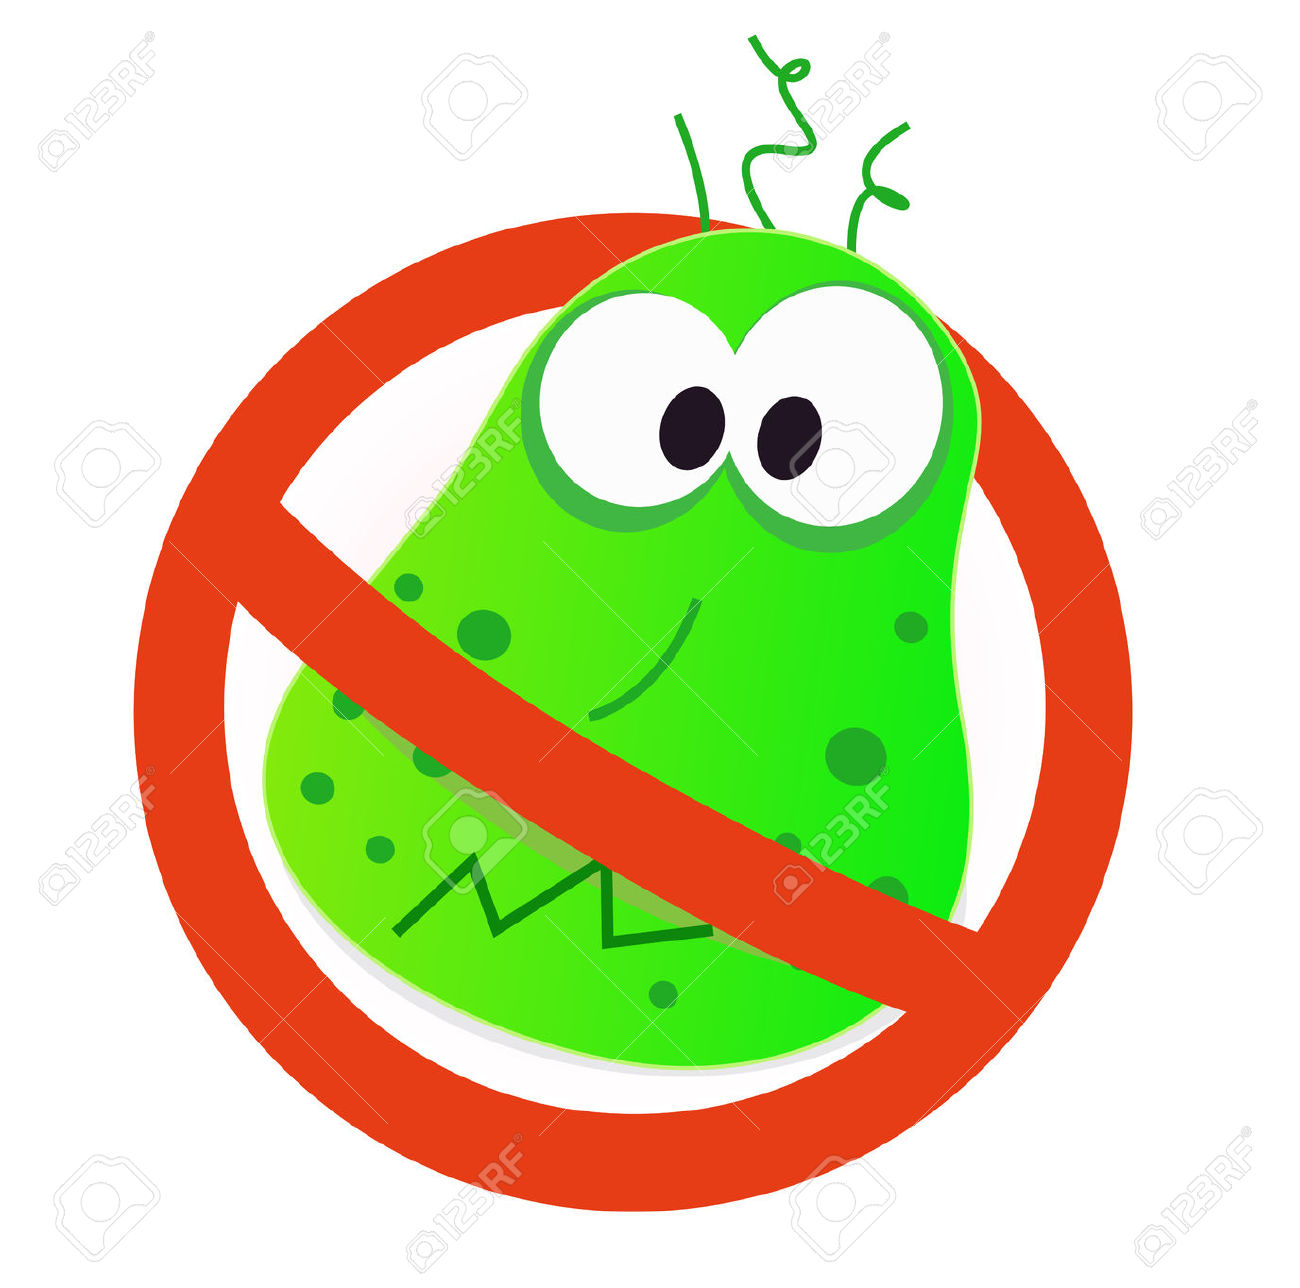 Stop Germs Vaccine Clipart